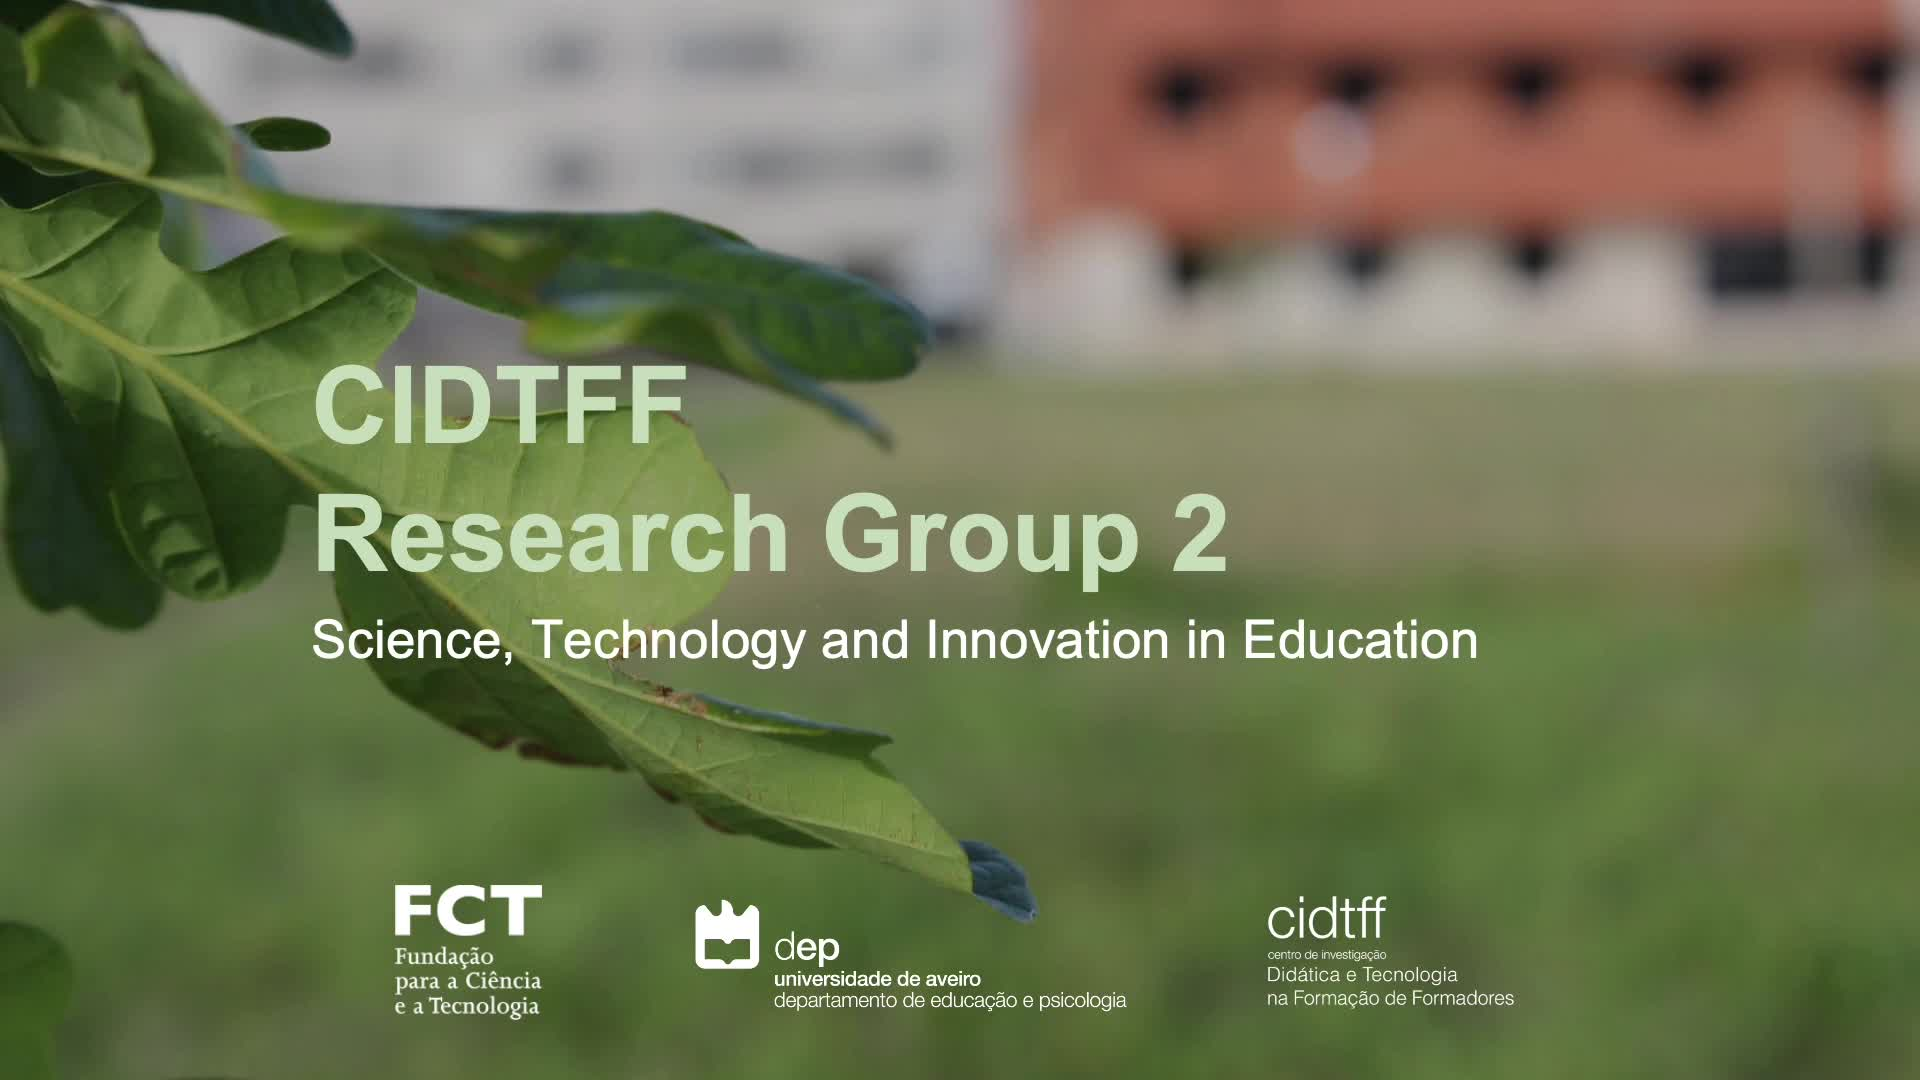 CIDTFF Research Group 2 - Science, technology and innovation in education